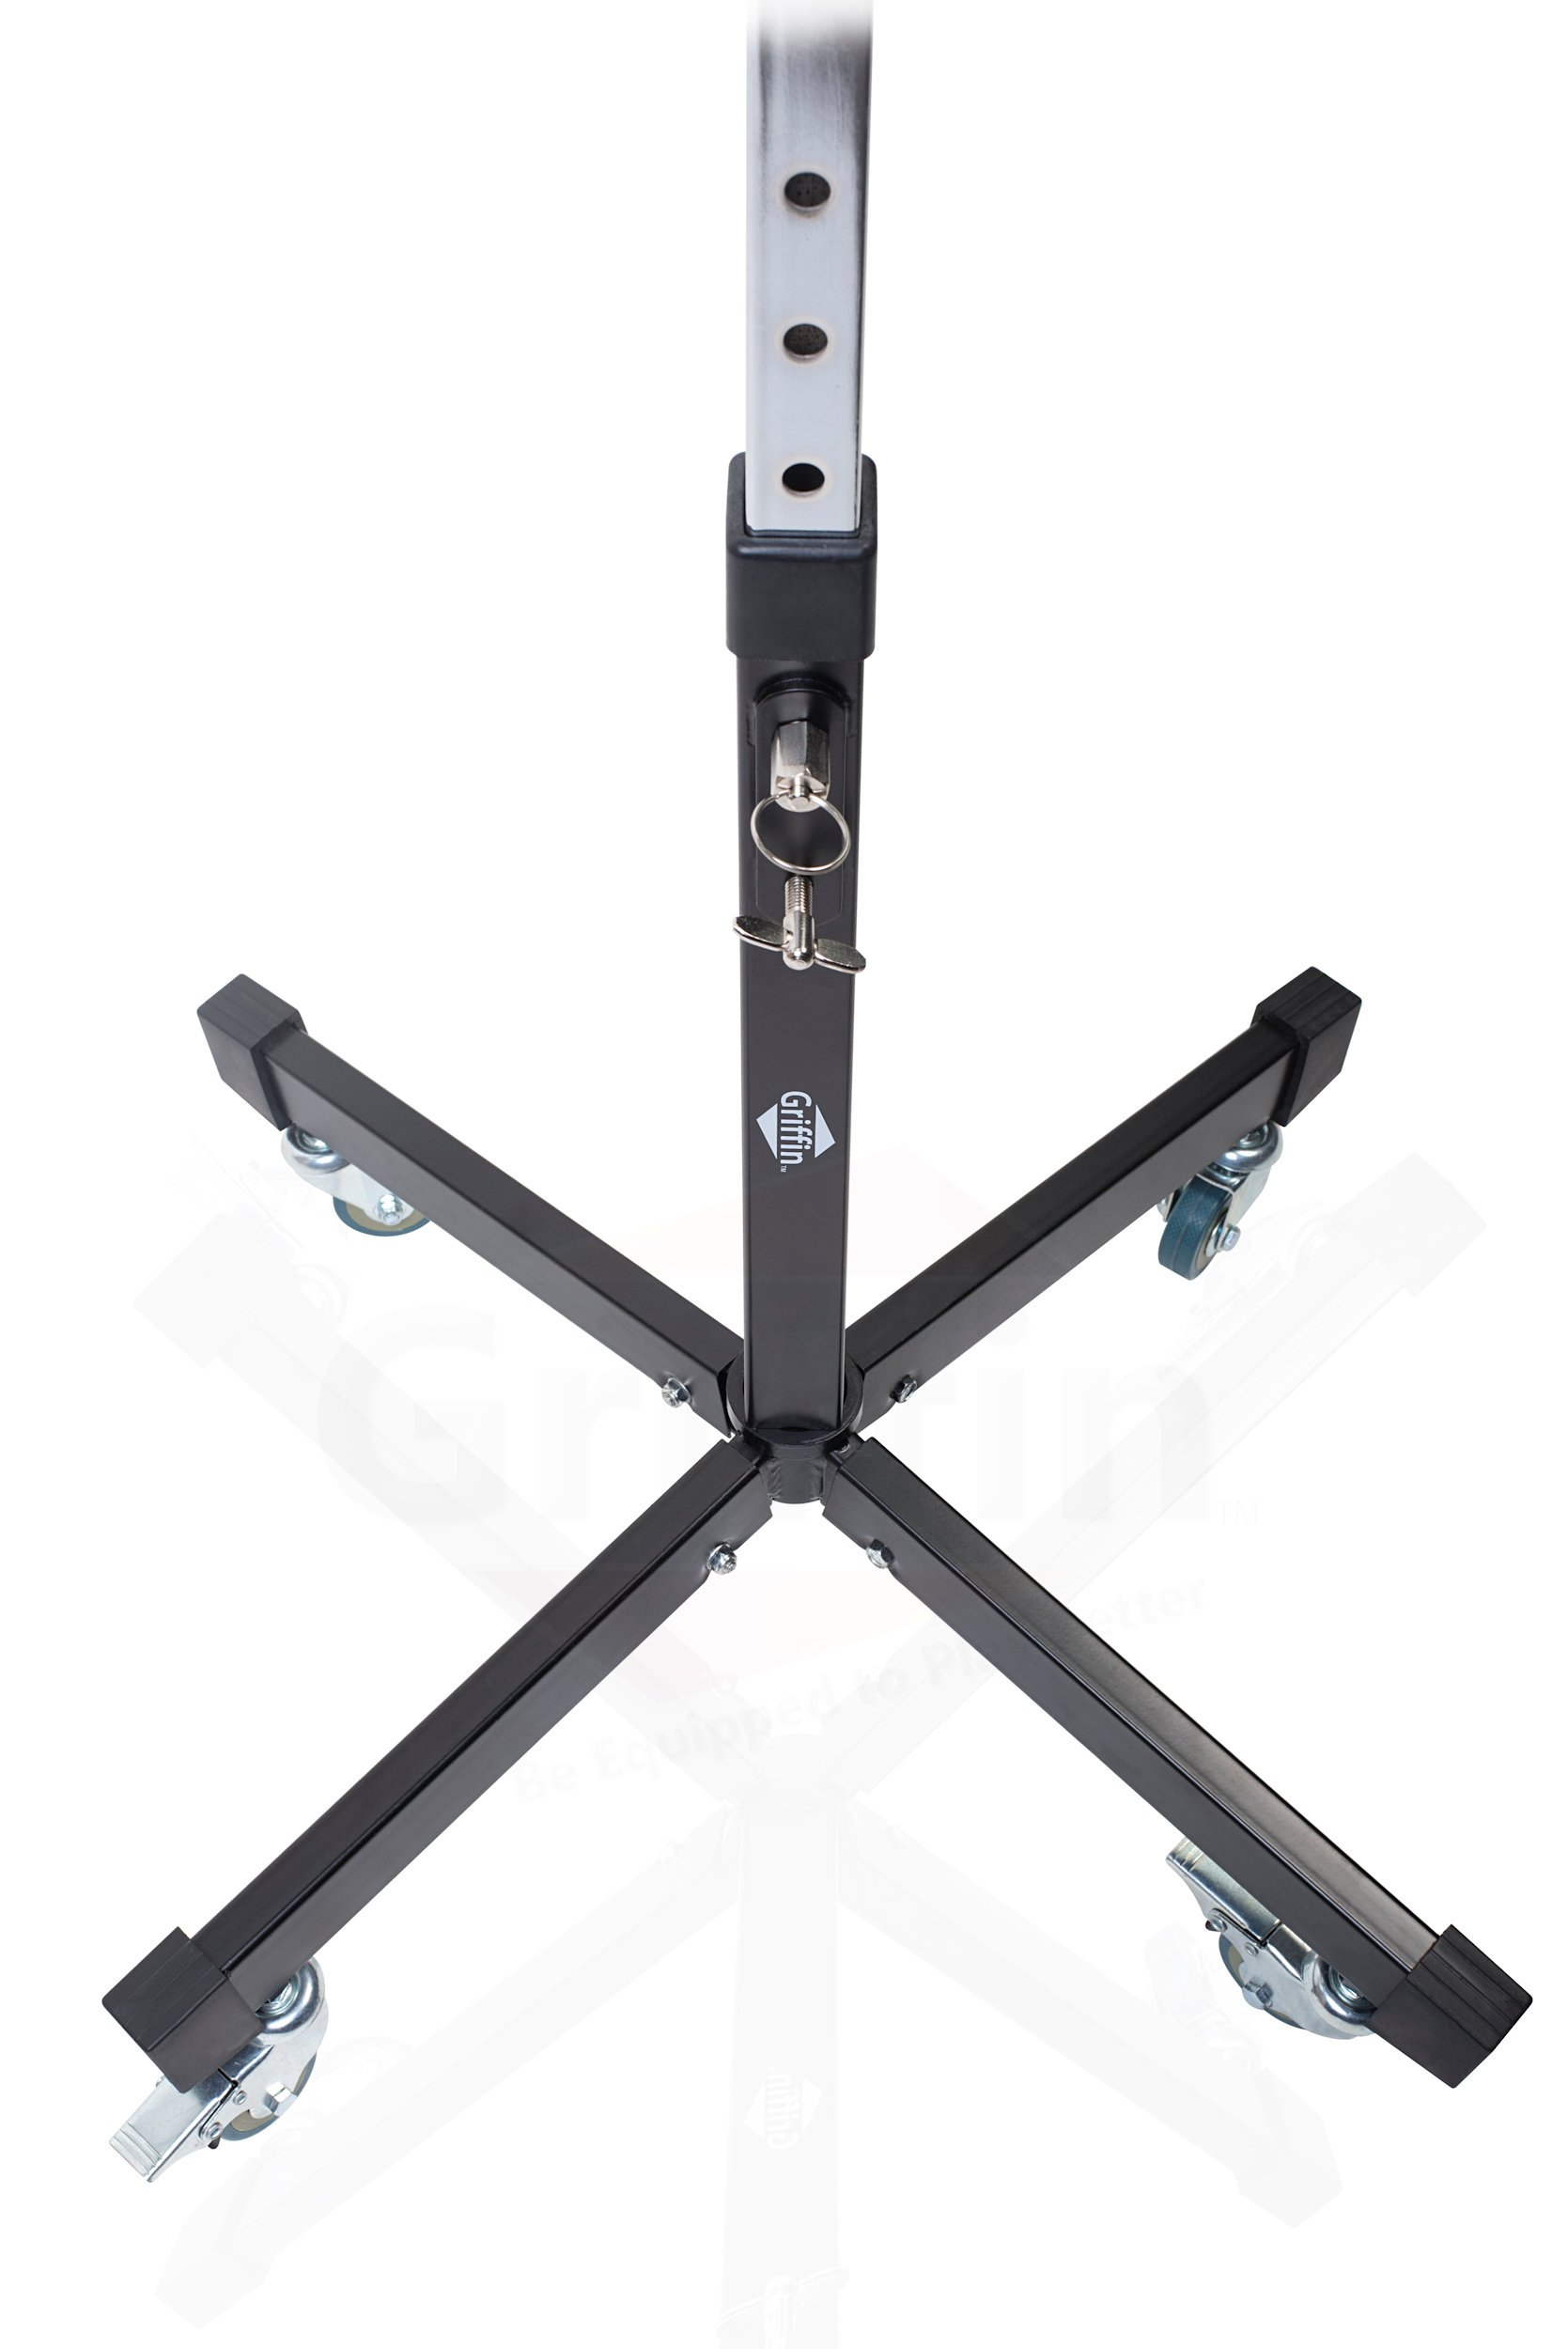 Mobile Studio Mixer Stand DJ Cart by Griffin | Rolling Standing Rack On Casters with Adjustable Height|Portable Turntable | Protect Your Digital Audio Gear and Music Equipment|Heavy Duty Construction by Griffin (Image #3)